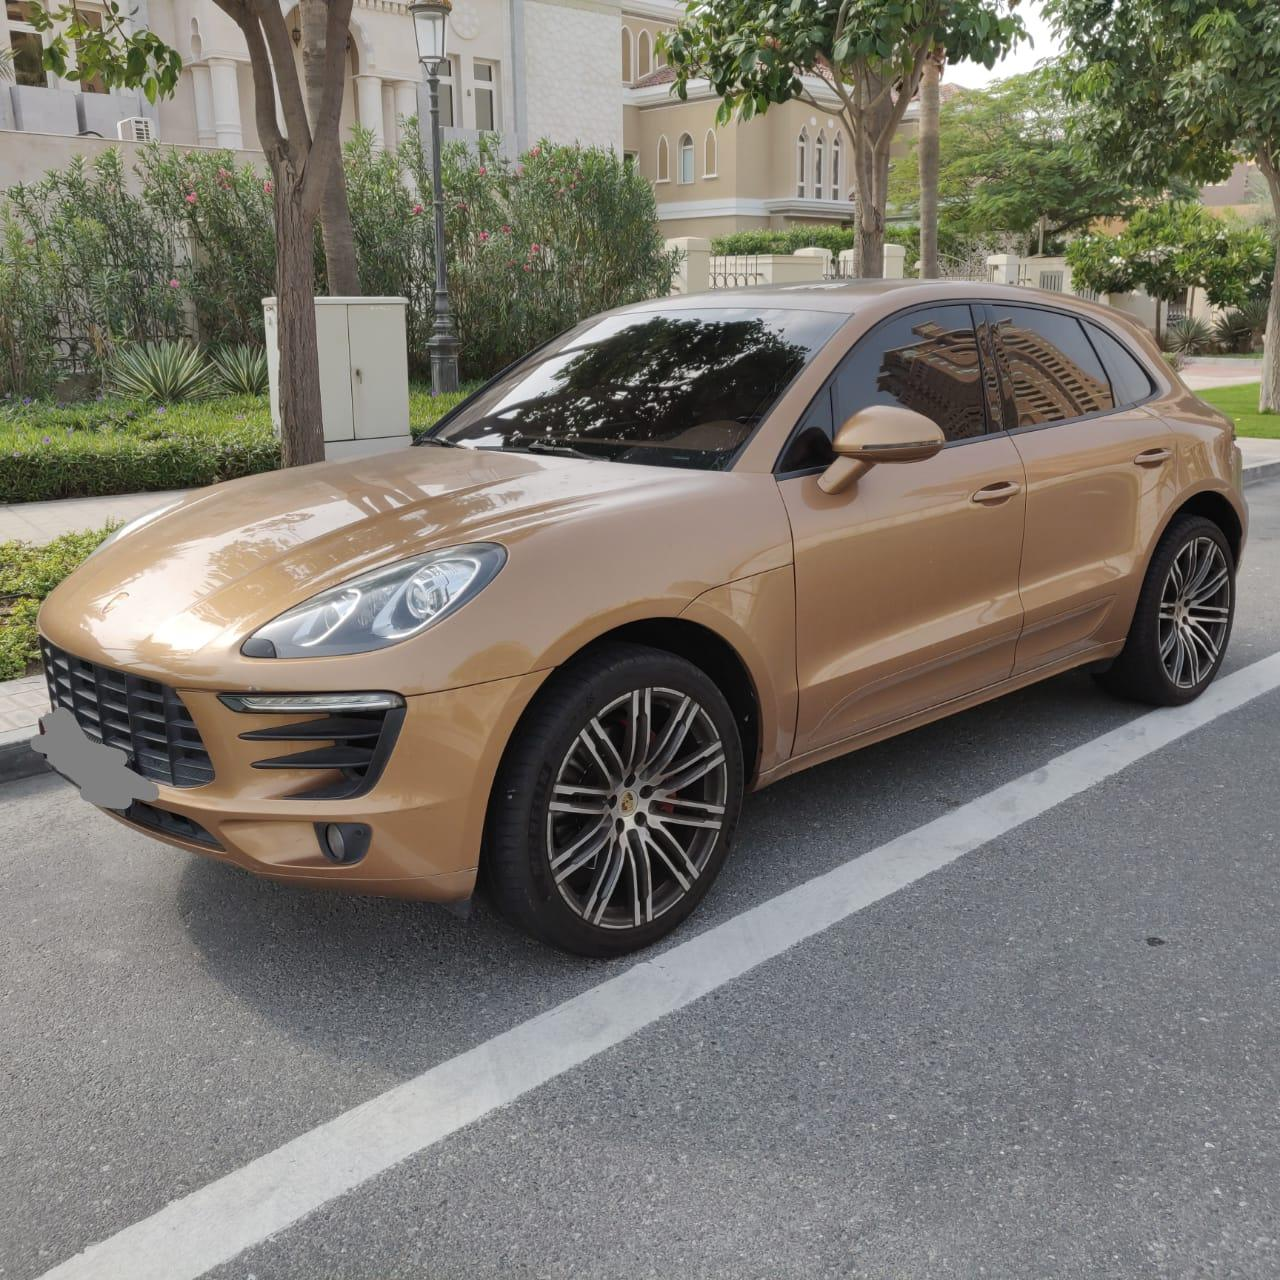 Macan S on official warranty